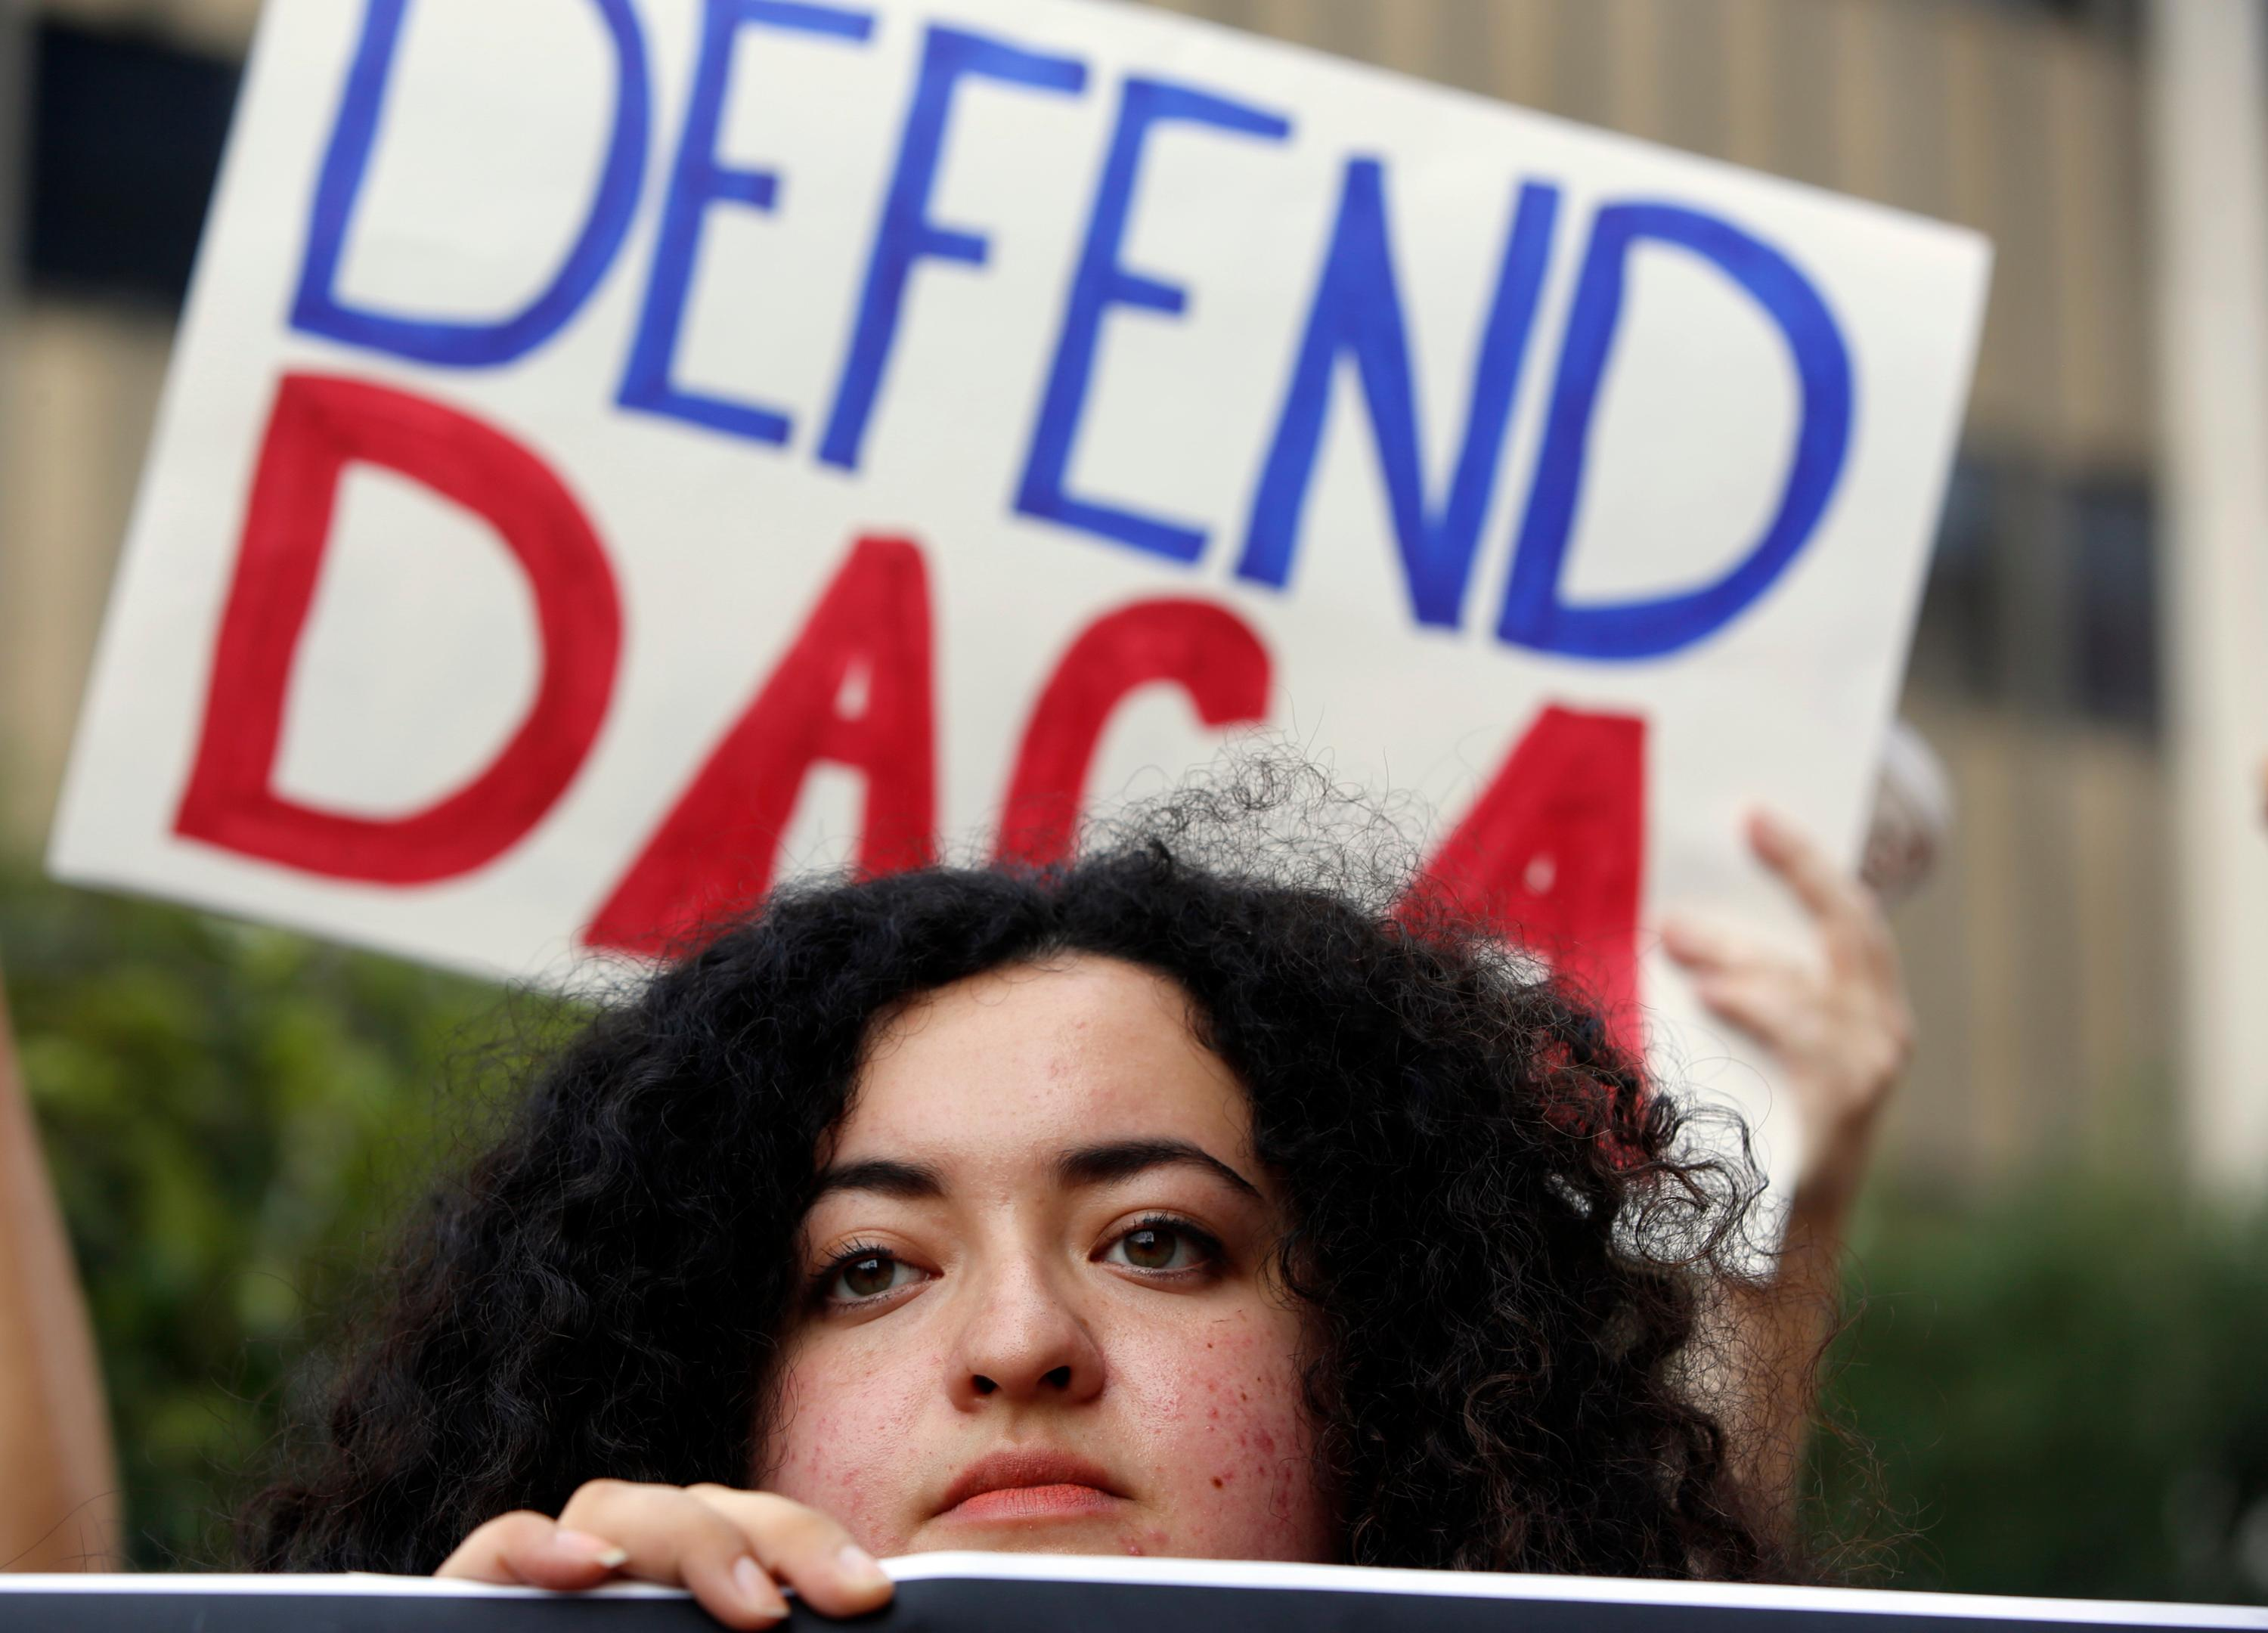 FILE - In this Sept. 1, 2017 file photo, Loyola Marymount University student and dreamer Maria Carolina Gomez joins a rally in support of the Deferred Action for Childhood Arrivals, or DACA program, outside the Edward Roybal Federal Building in Los Angeles.{&amp;nbsp;} (AP Photo/Damian Dovarganes, File)<p></p>